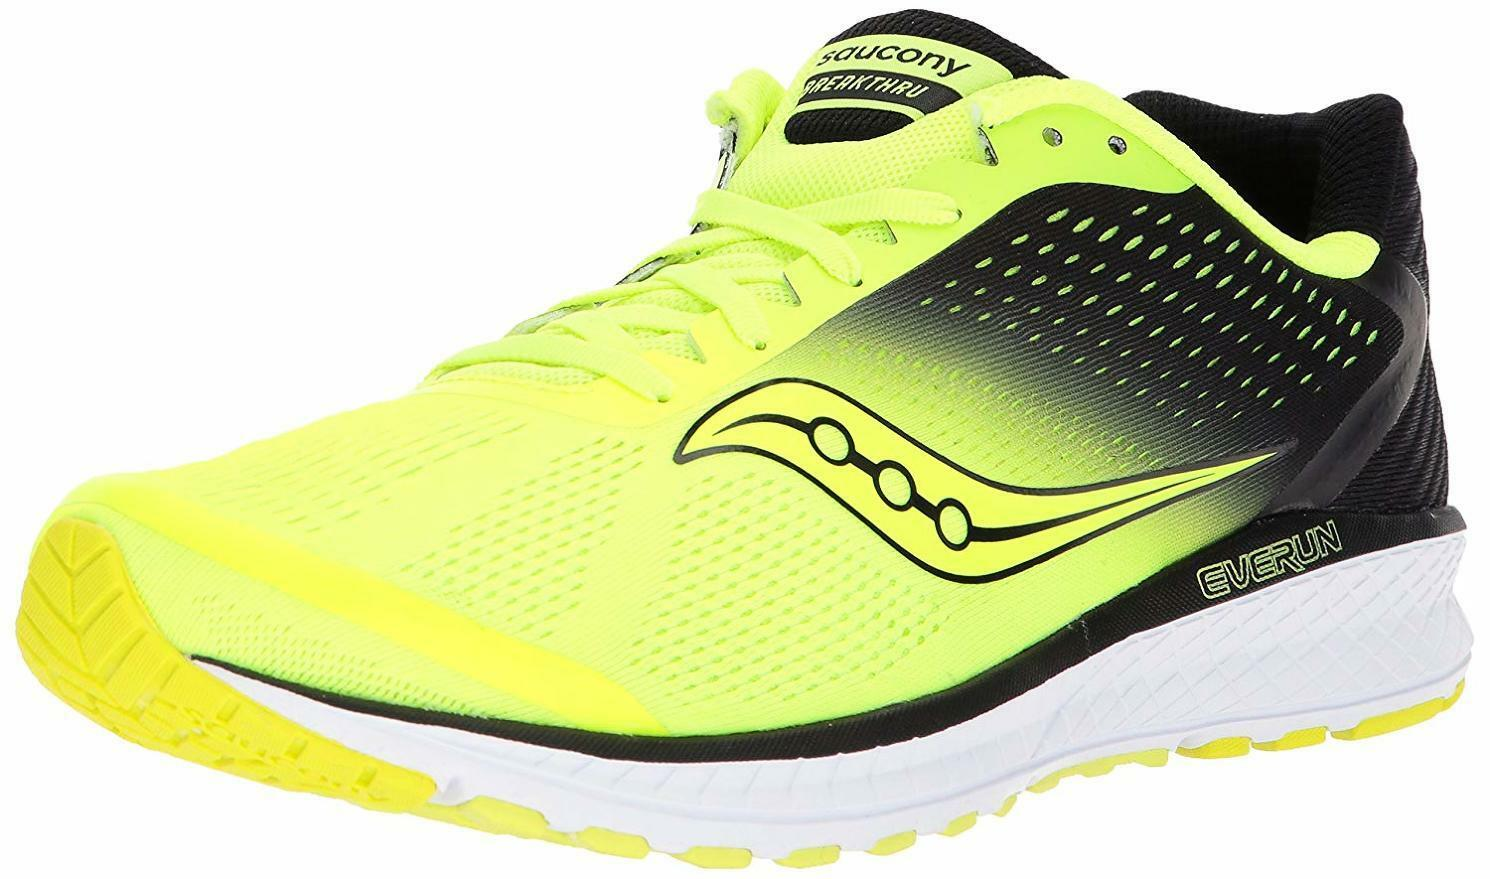 Saucony Men's Breakthru 4 Running shoes - Choose SZ color